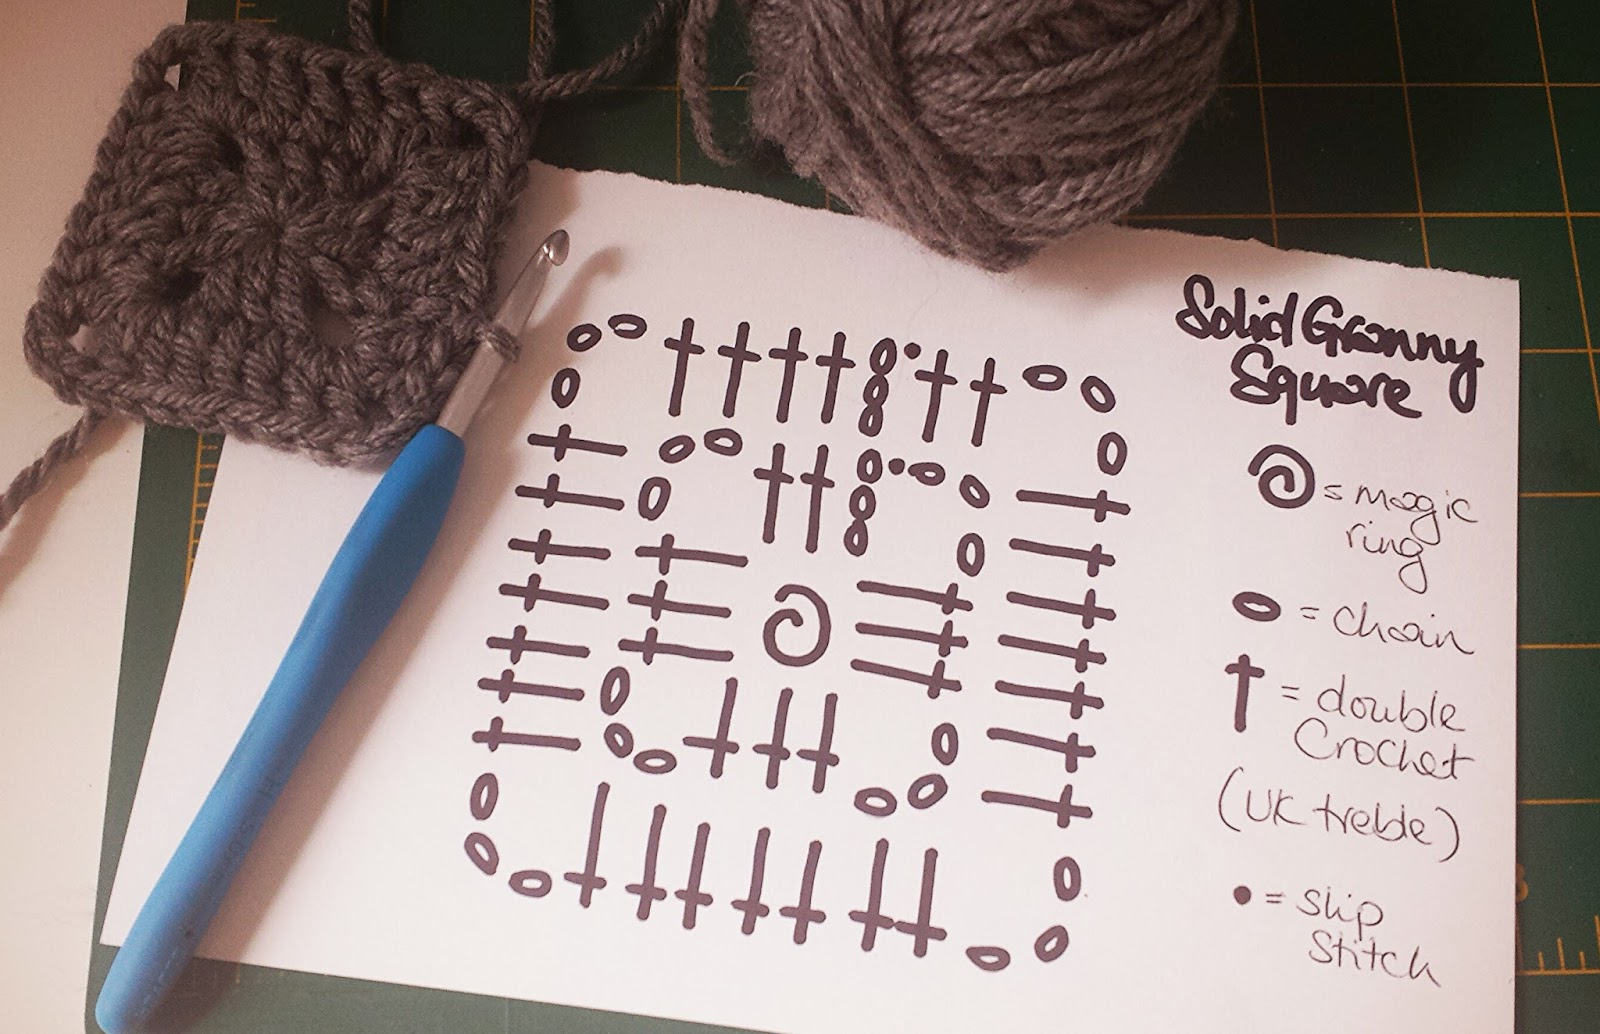 How To Crochet A Flat Border Around Solid Granny Squares Sort Of